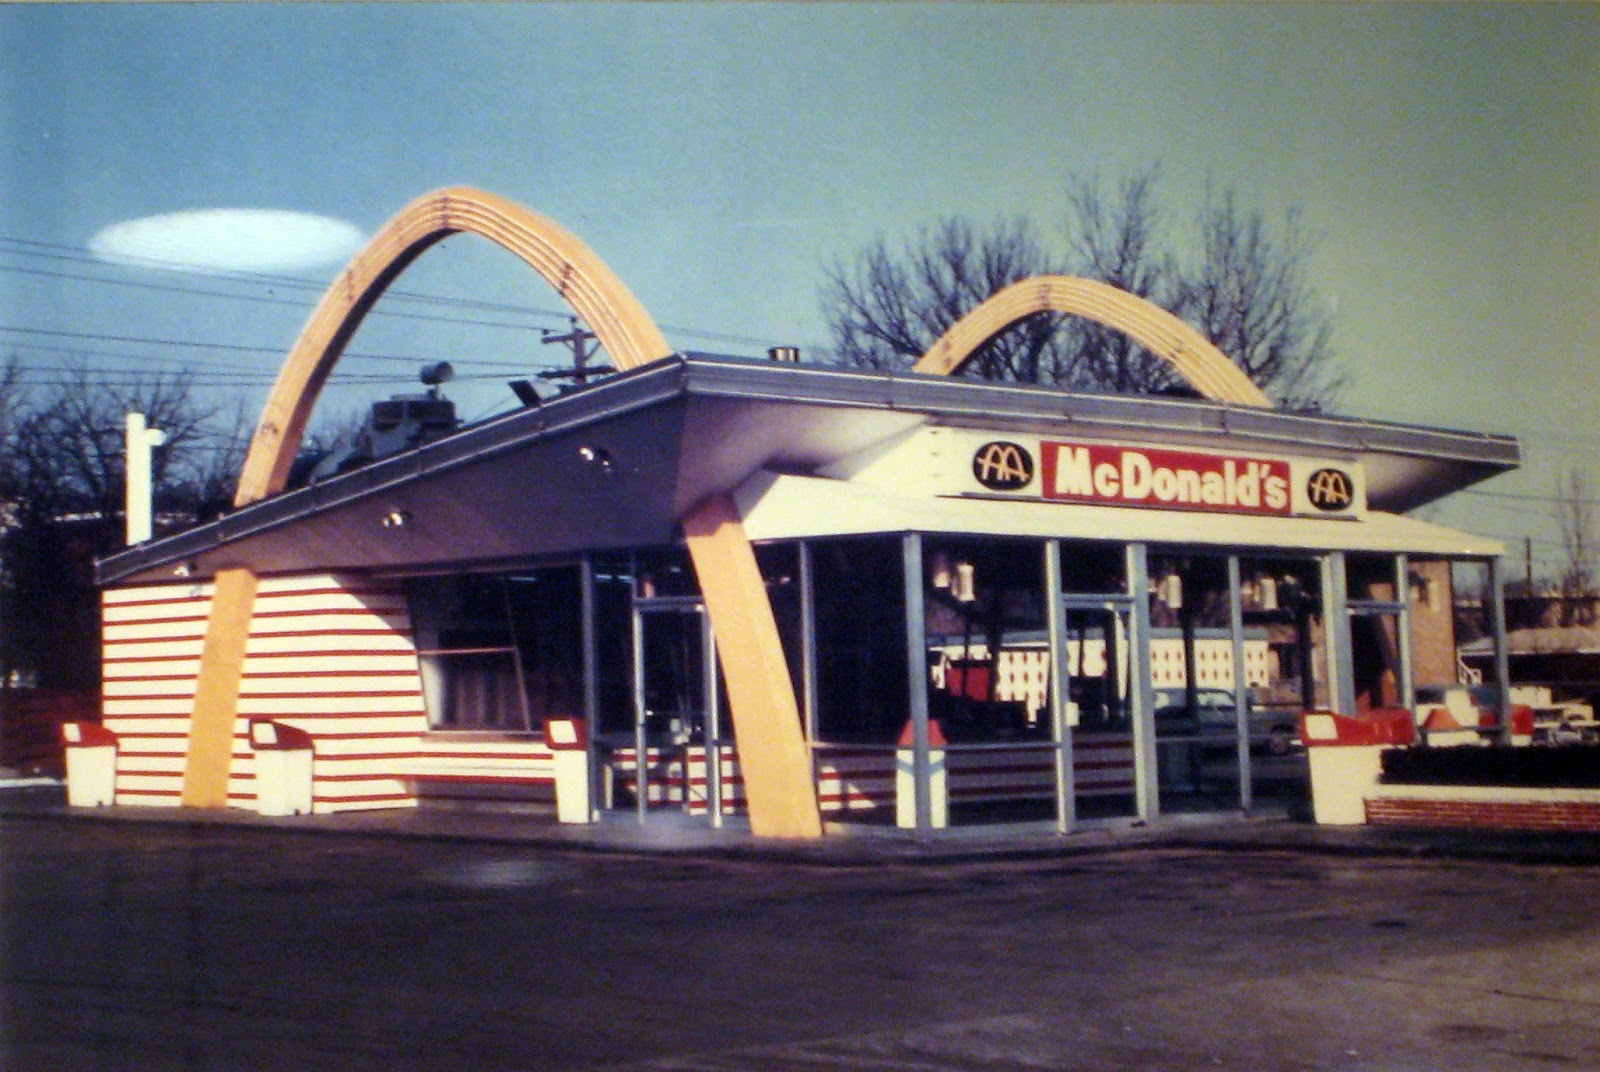 the history of mcdonald's Mcdonald's biggest outlet was built in london, england on the site of the 2012 olympics the small bbq stand has come a long way, indeed, and has defined and changed the face of the fast food history.